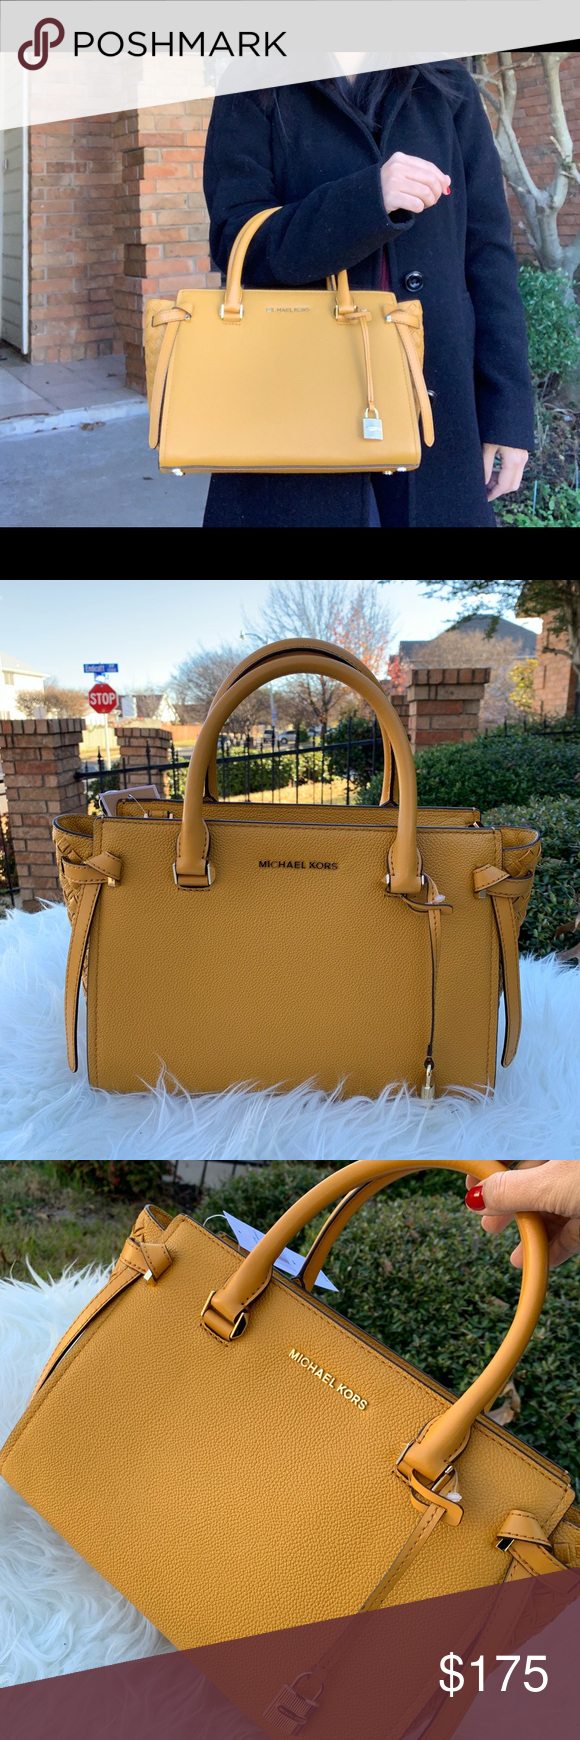 e89363909c95 Michael Kors Cassie Medium Satchel Leather Style 35H8GT6S6L New Collection  from Michael Kors Store today and I guarantee 100% authentic Color Marigold  Size ...